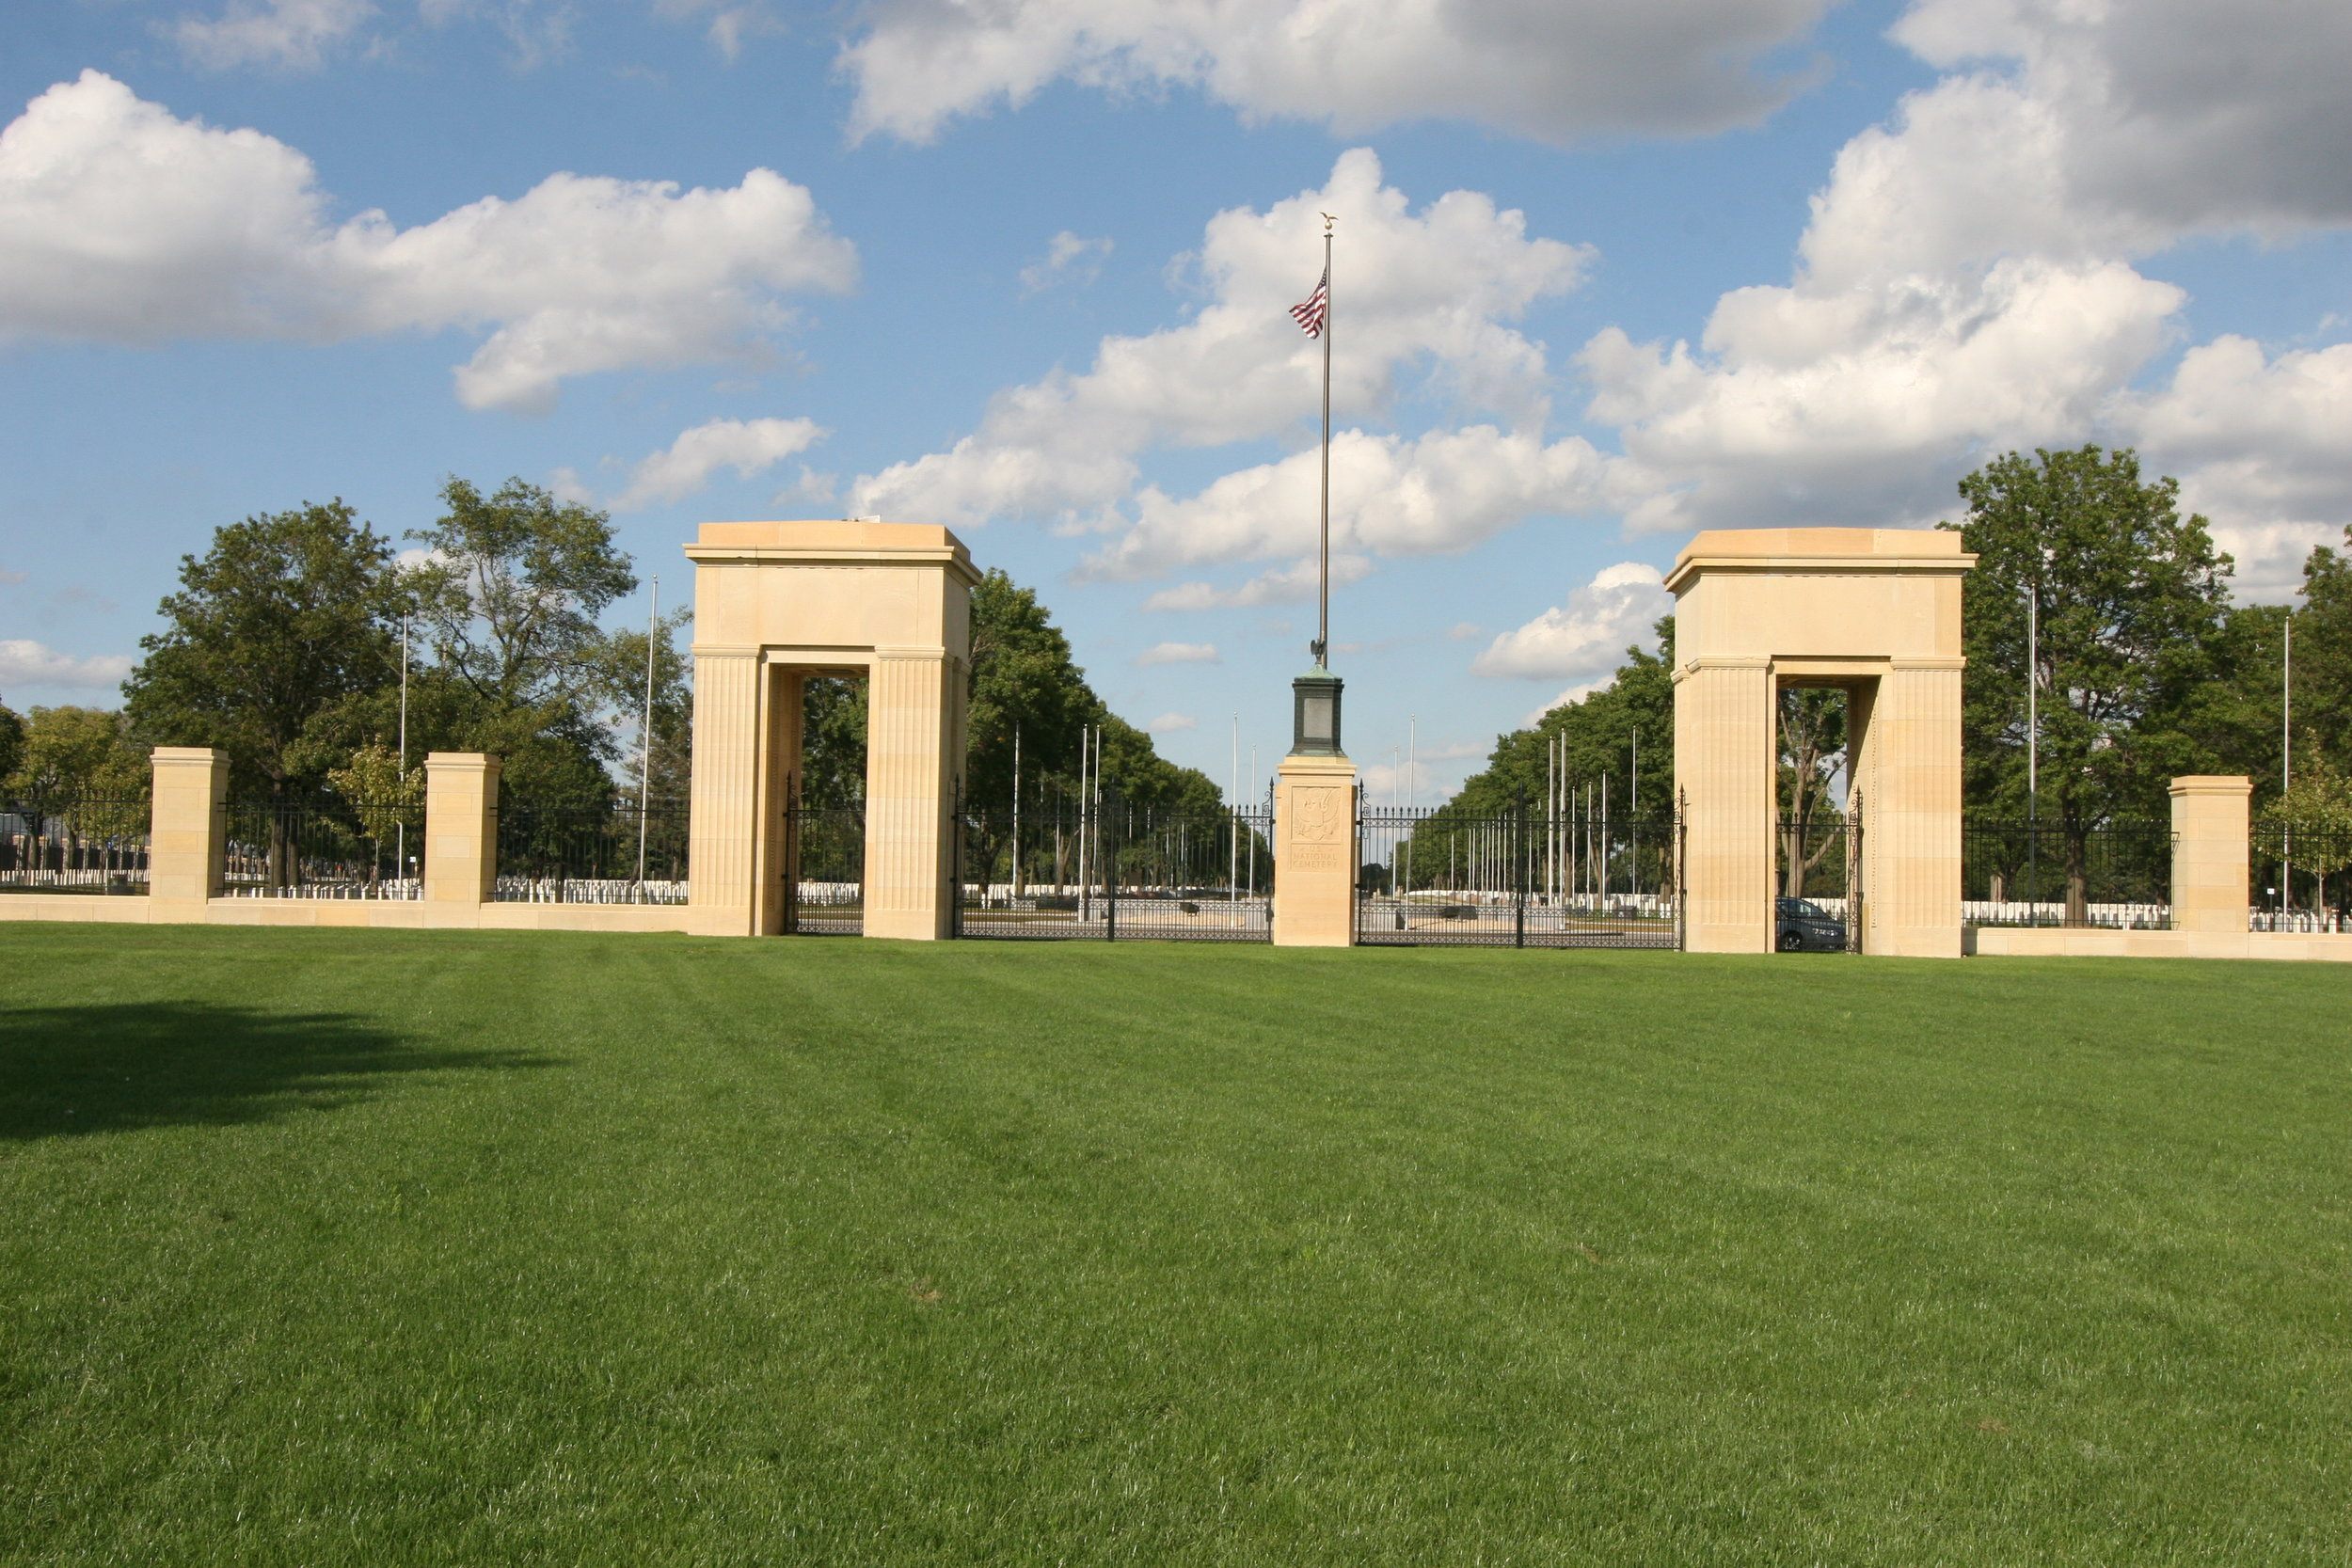 Fort Snelling National Cemetery - Take a self-guided walking tour of the cemetery and discover unique, historical grave sites of local men and women who shaped regional and national history going as far back as the Civil War.